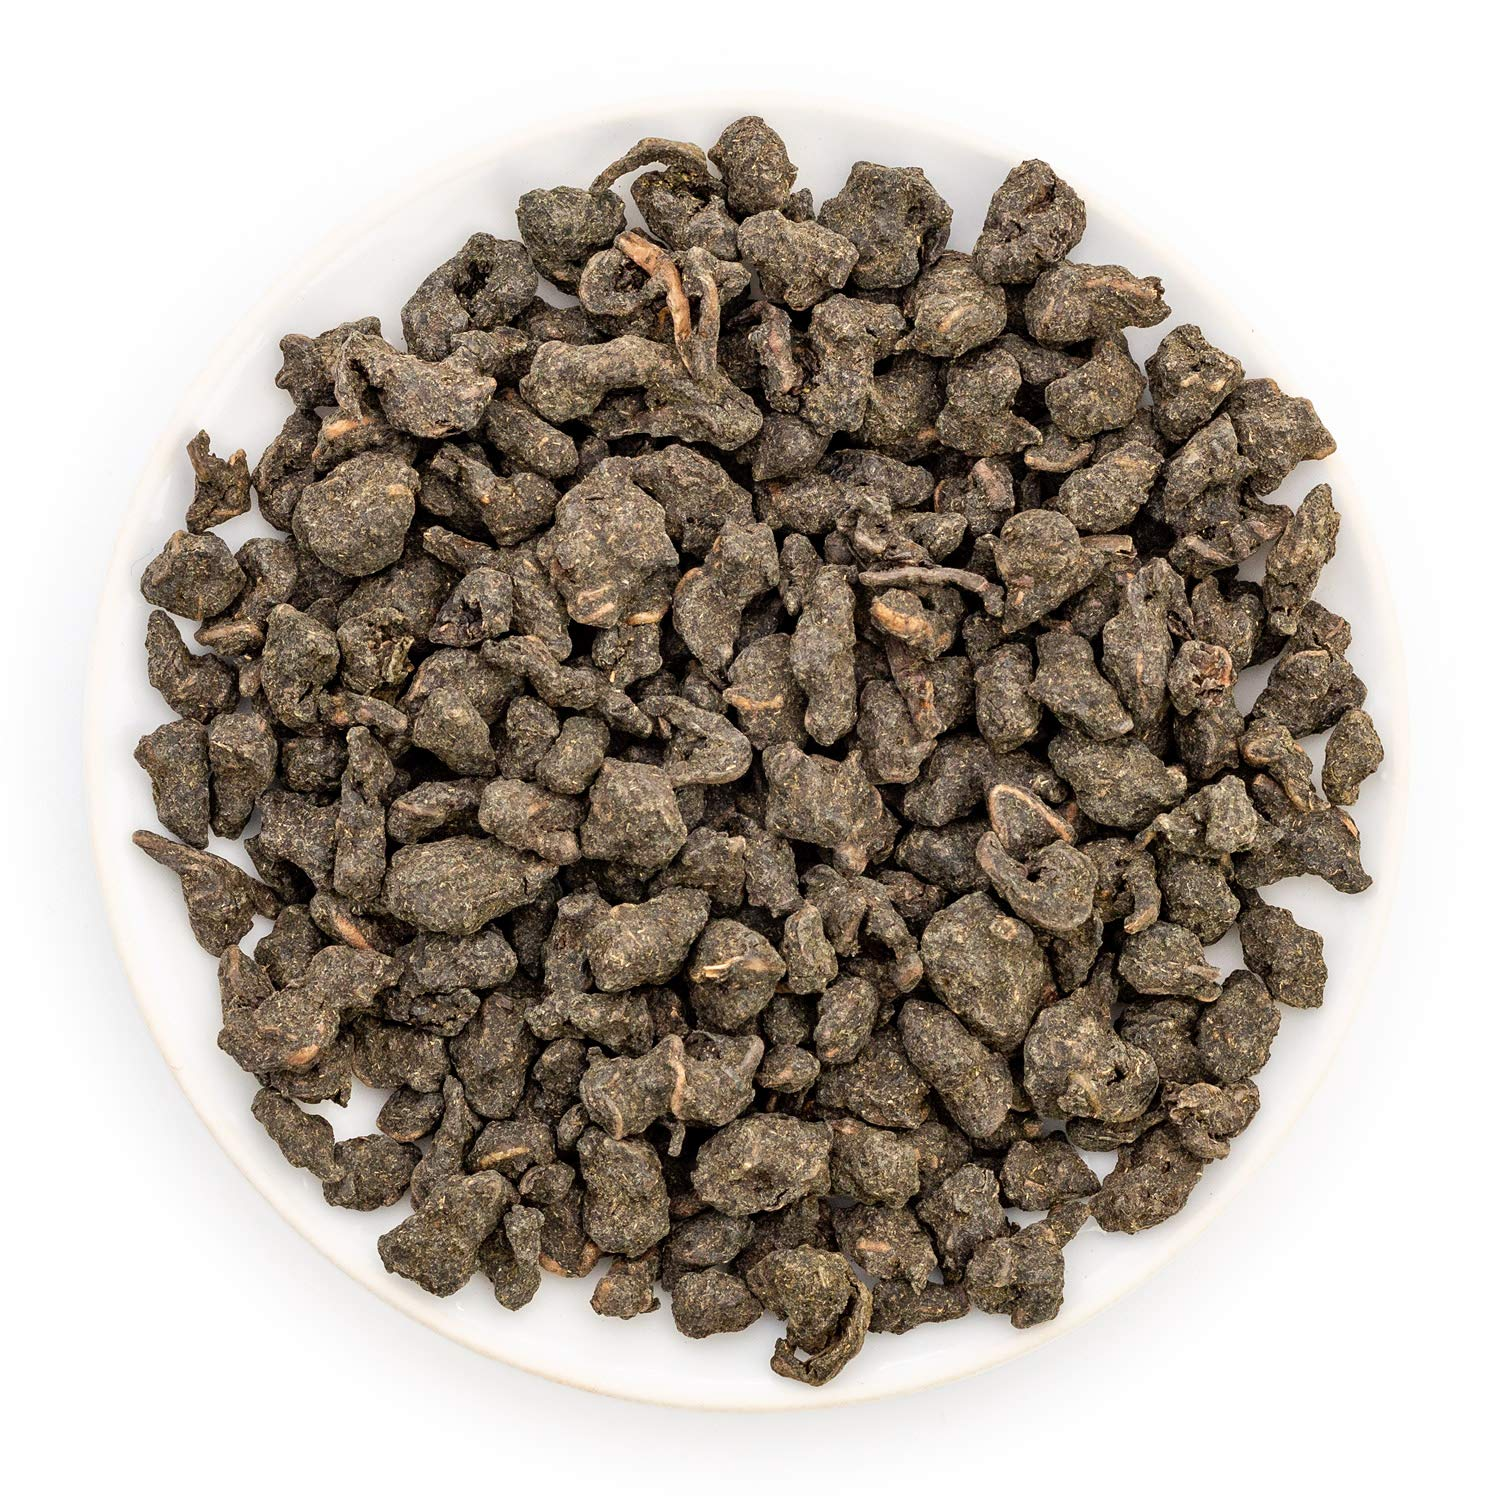 Oriarm 1000g / 35.3oz Ginseng Oolong Tea Loose Leaf - Lan Gui Ren Wulong Chinese Tea Leaves - Energy Boost - Naturally Processed